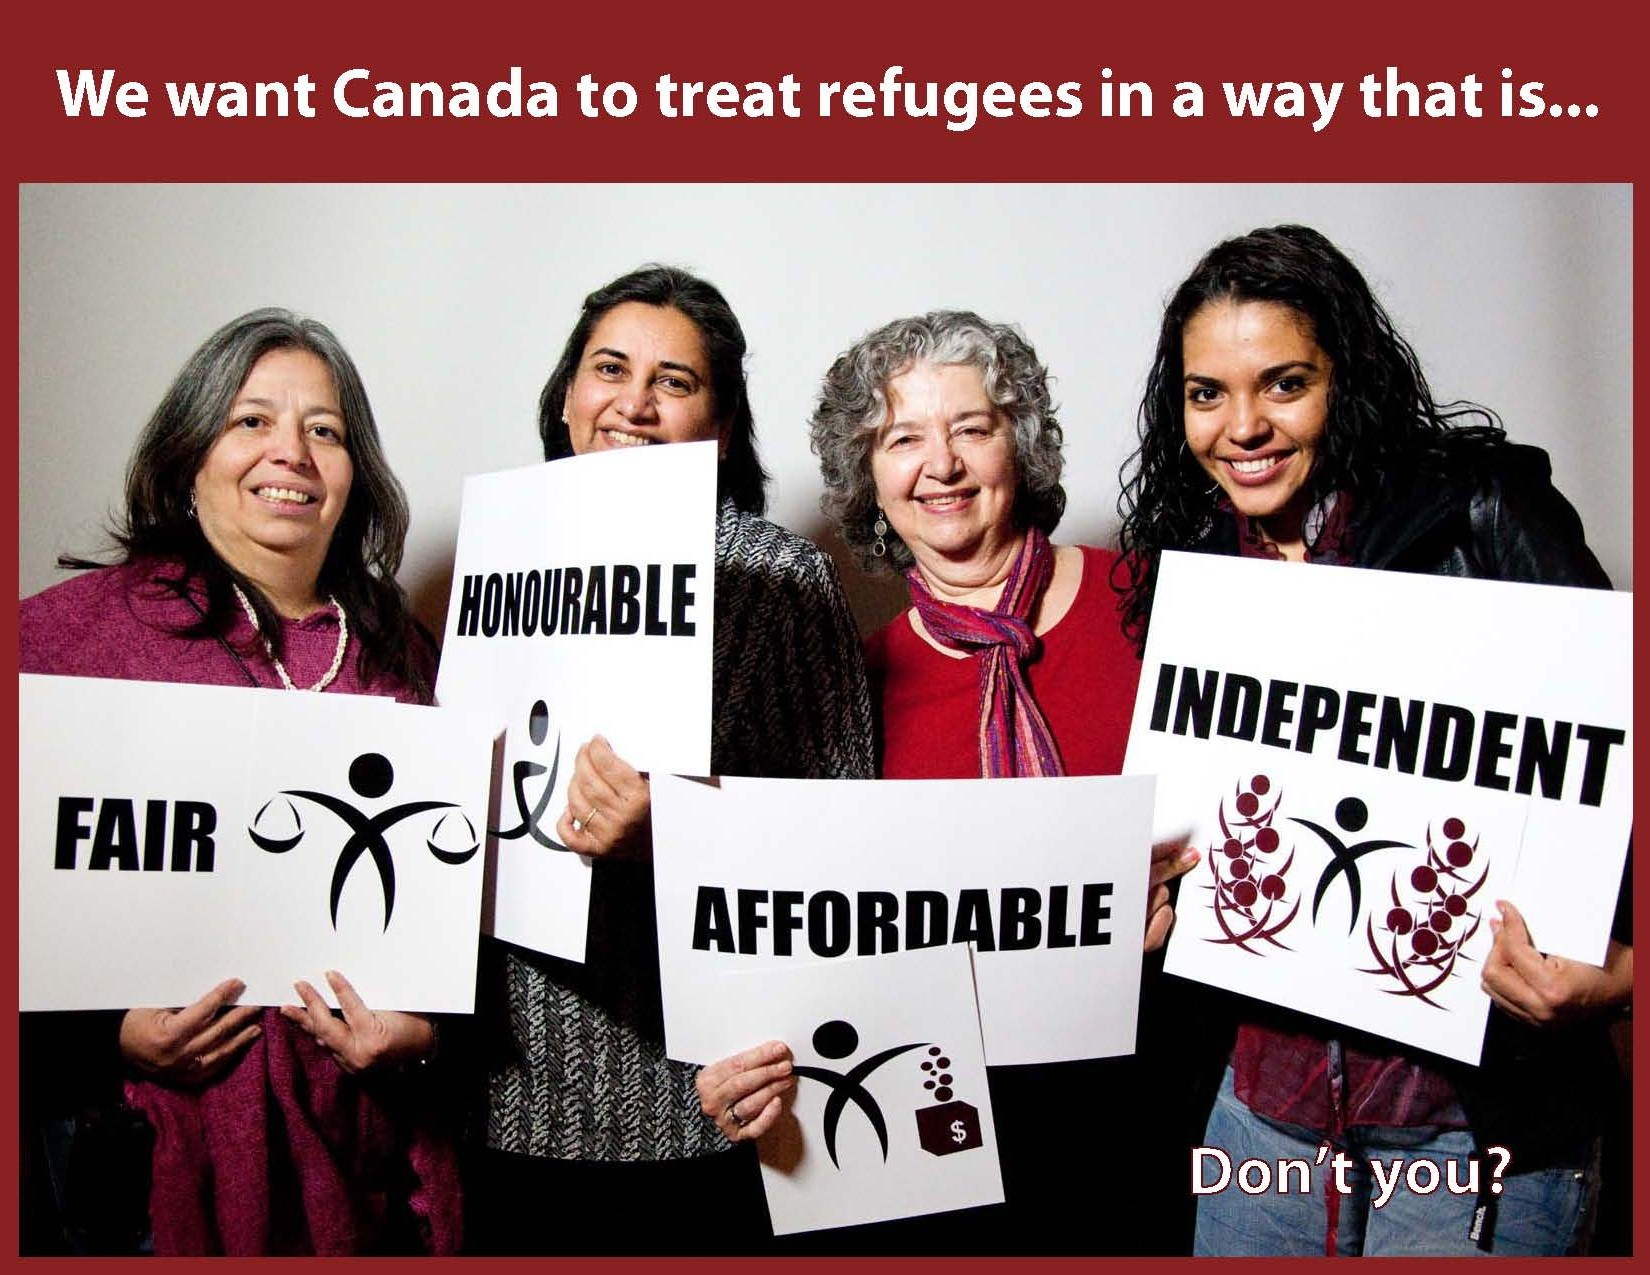 What we want for refugees - 4 women